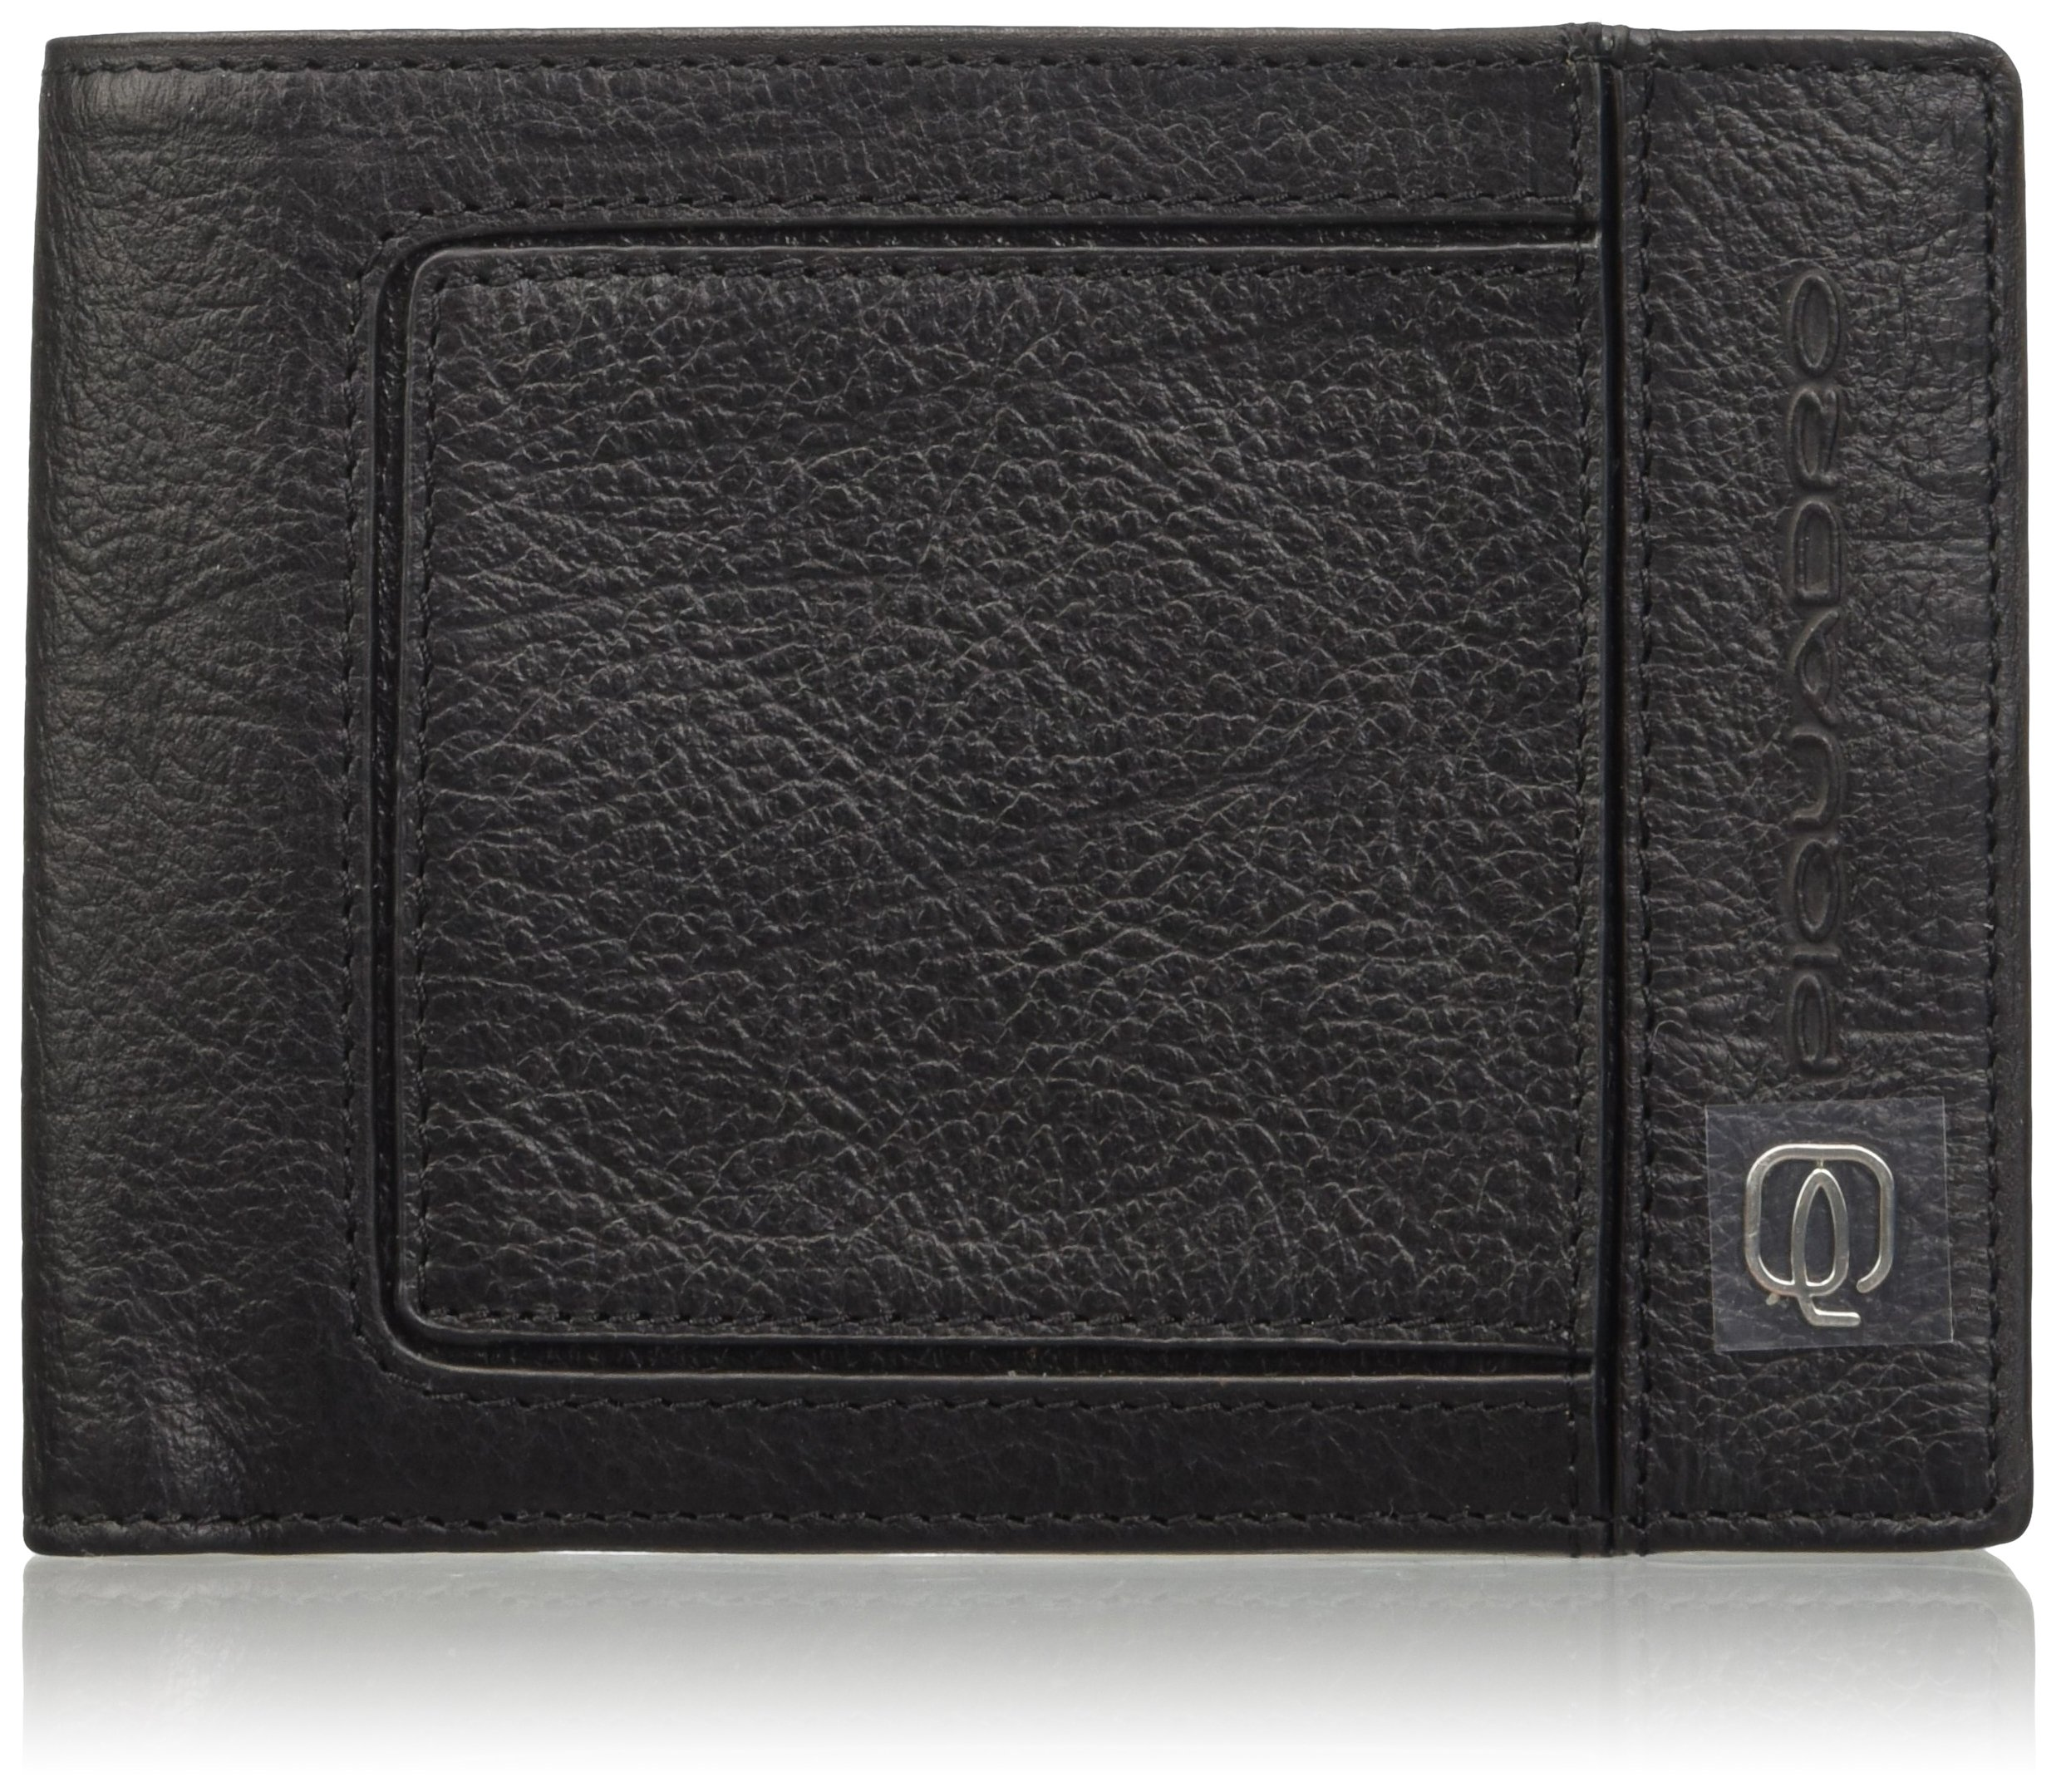 Piquadro Men's Leather Wallet with Coin Pocket and Credit Card Slots, Black, One Size